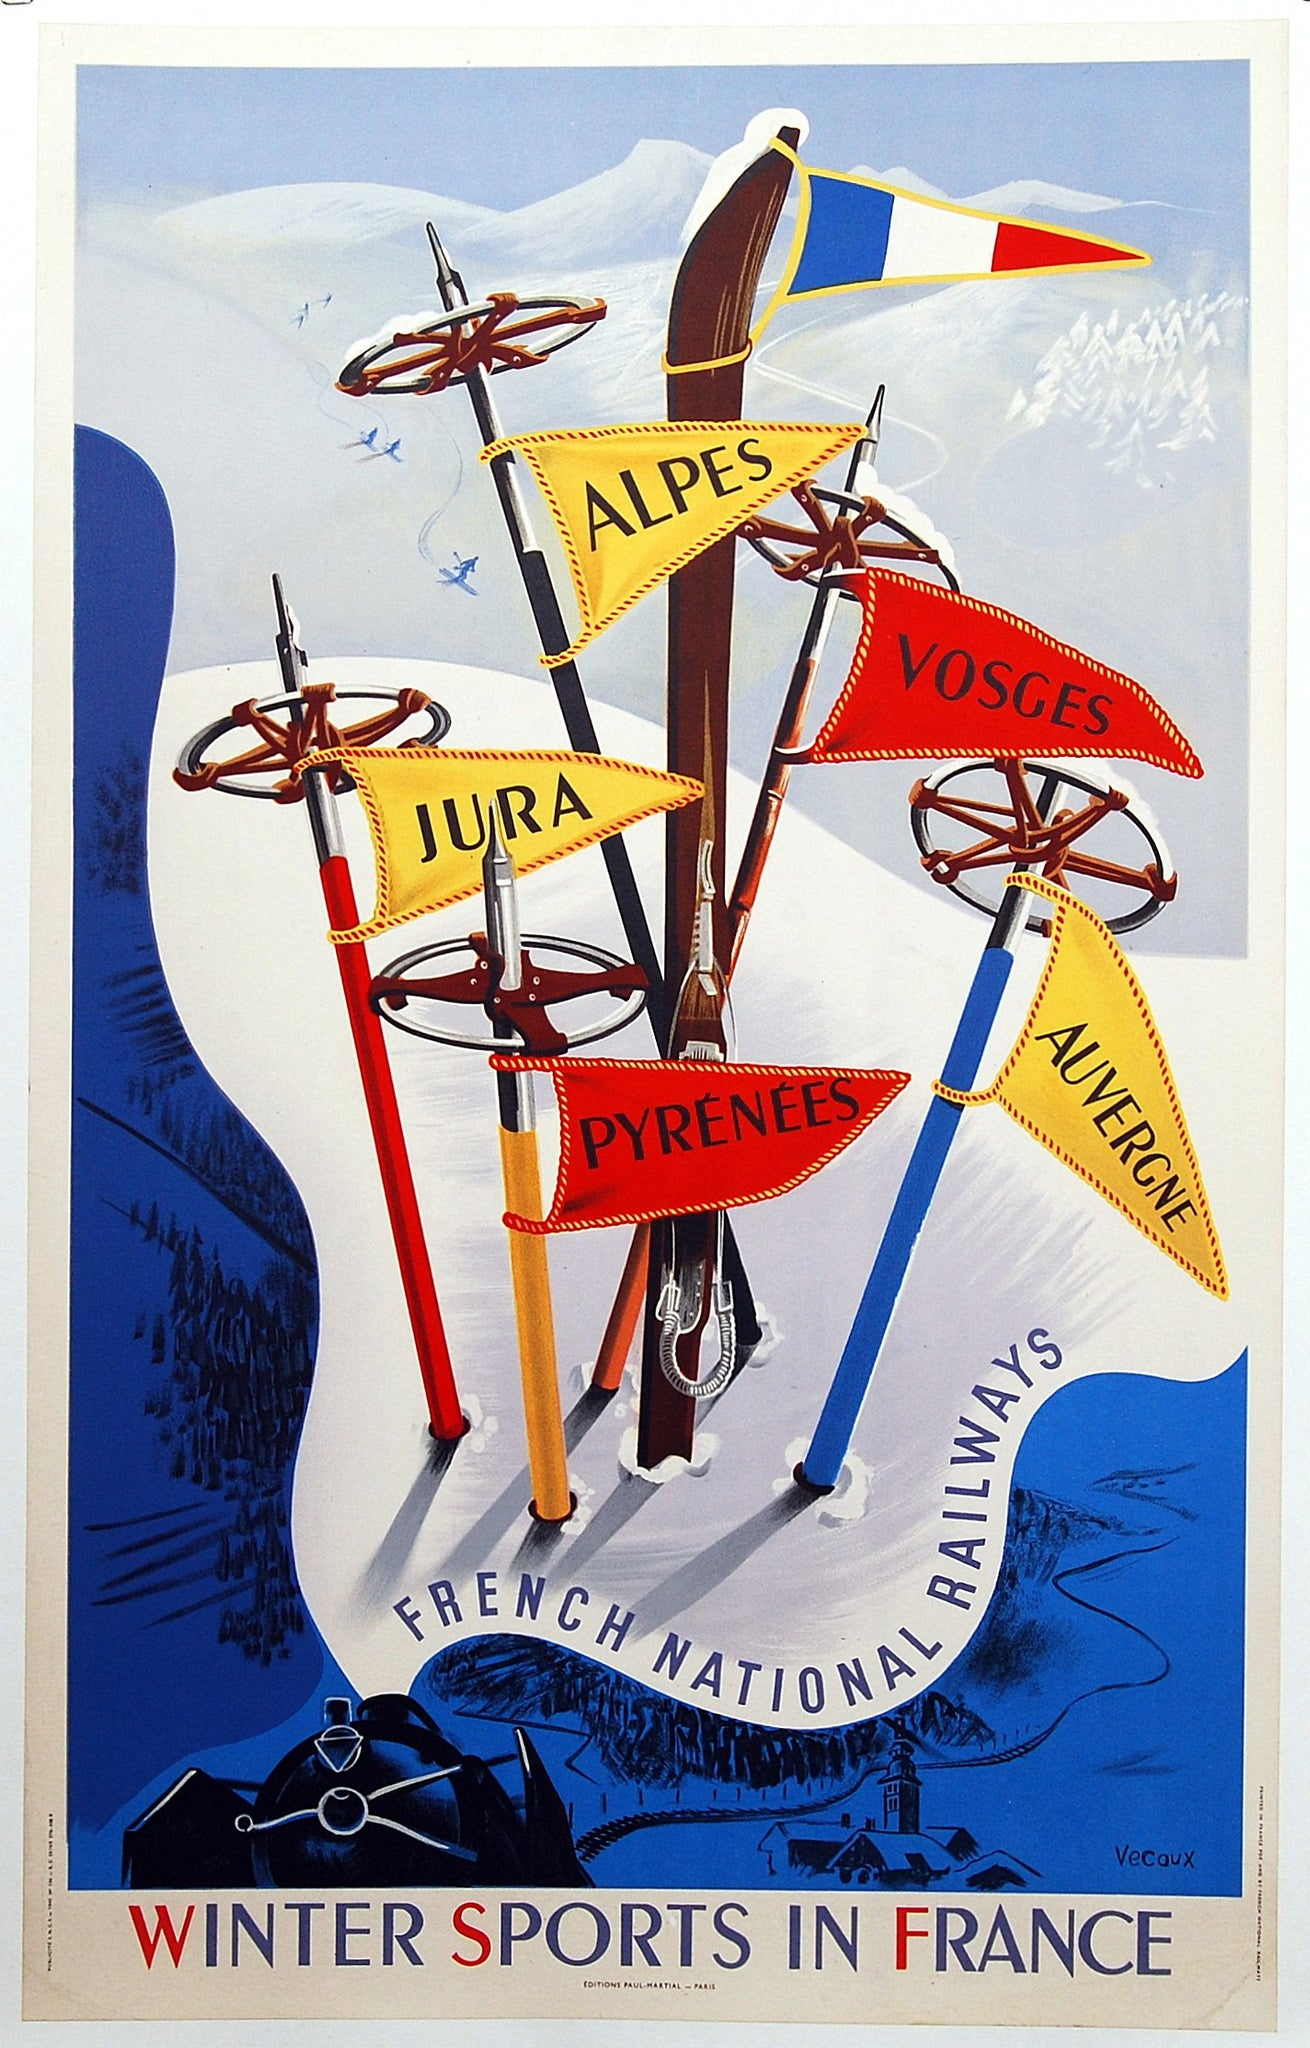 Original Winter Sports In France Poster by Vecoux 1947